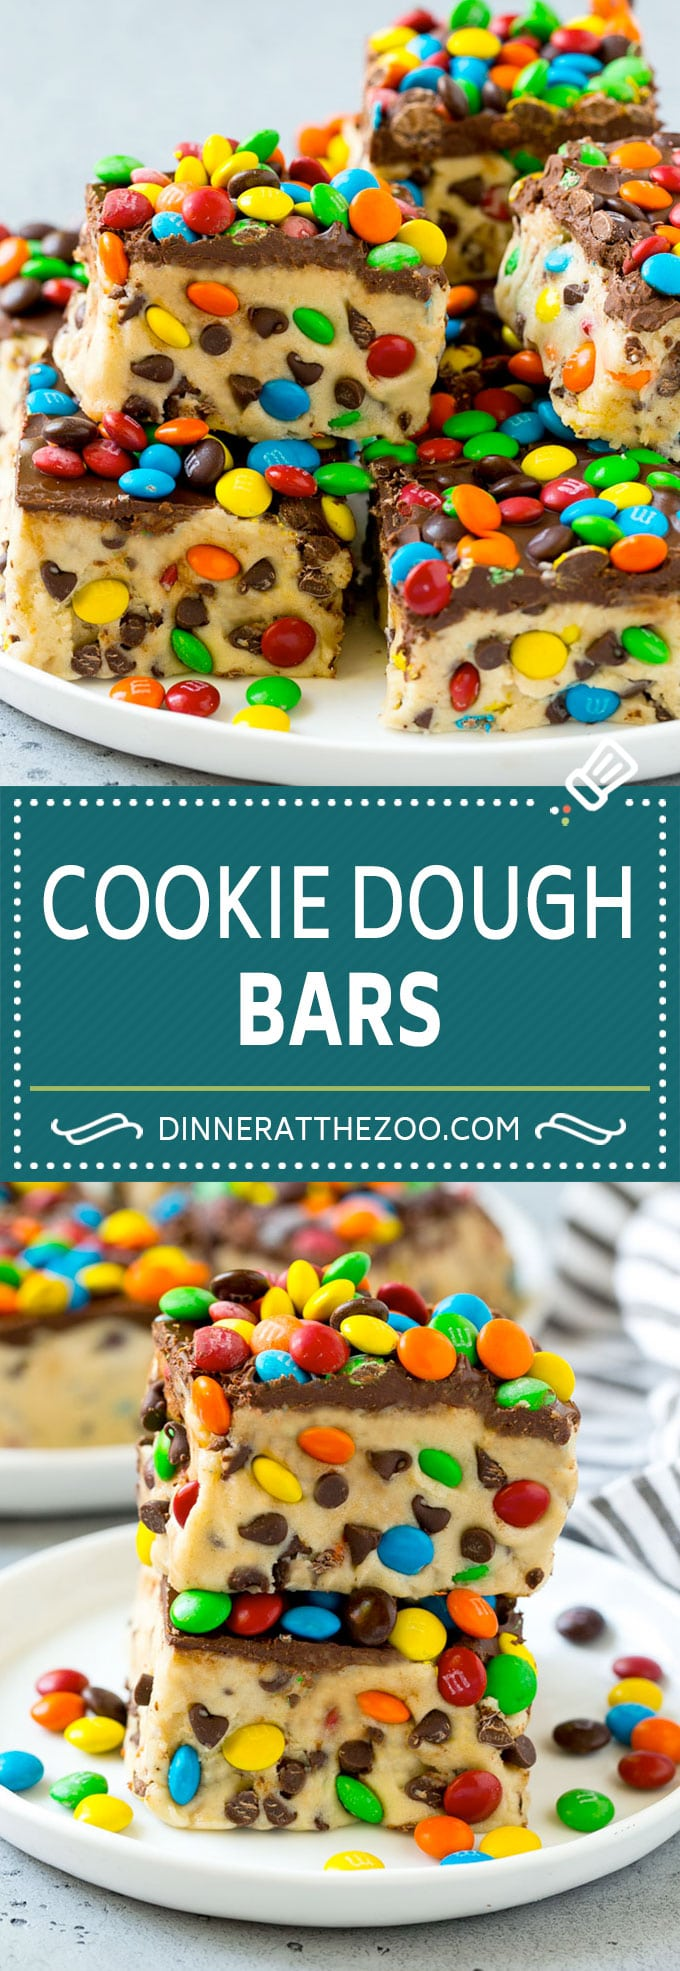 Cookie Dough Bars Recipe | Chocolate Chip Cookie Dough | Cookie Bars #cookiedough #cookies #cookiebars #chocolate #dessert #dinneratthezoo